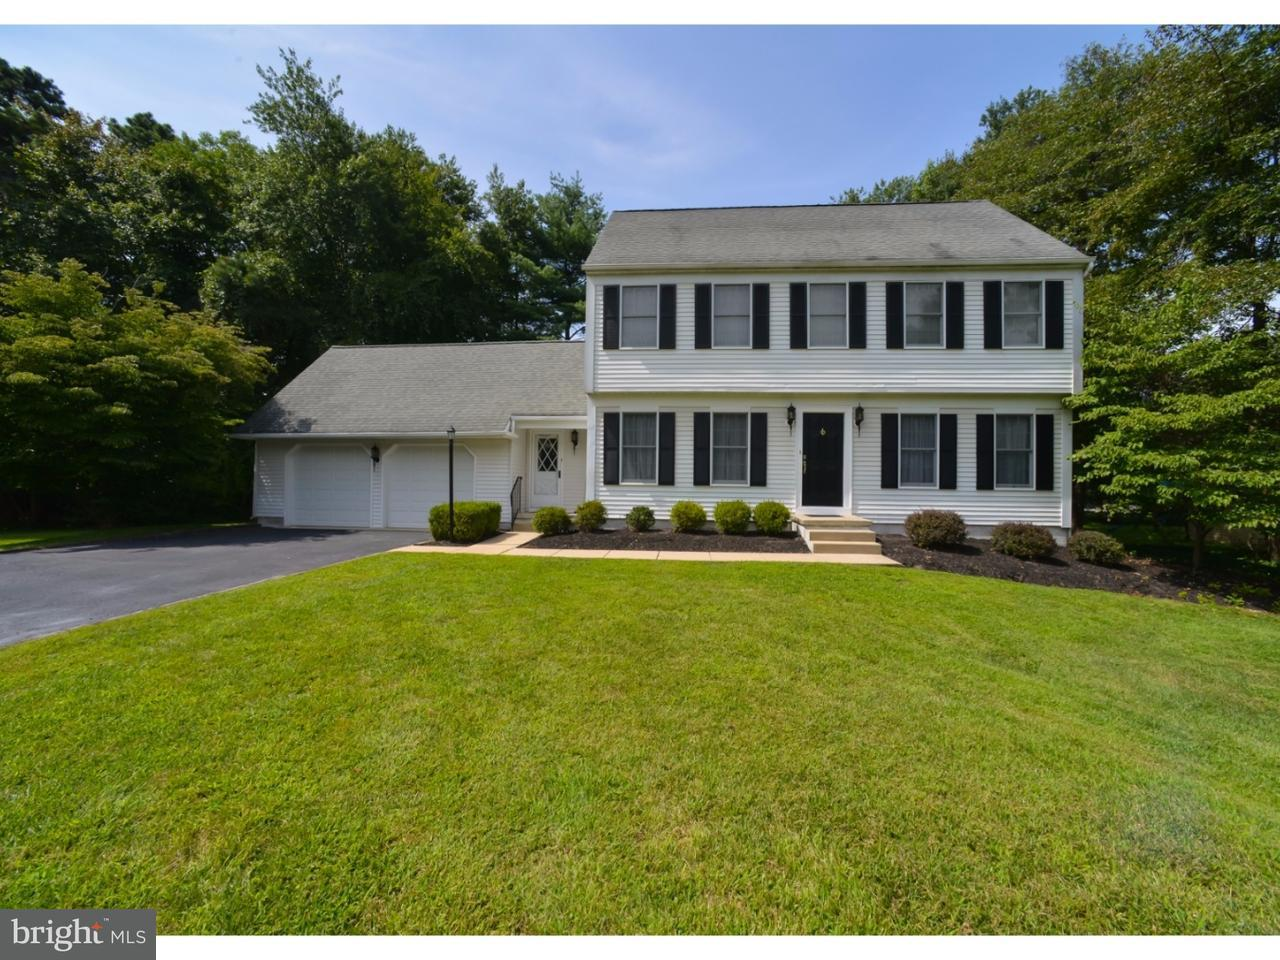 Single Family Home for Sale at 2 SHERWOOD Court Medford Township, New Jersey 08055 United States